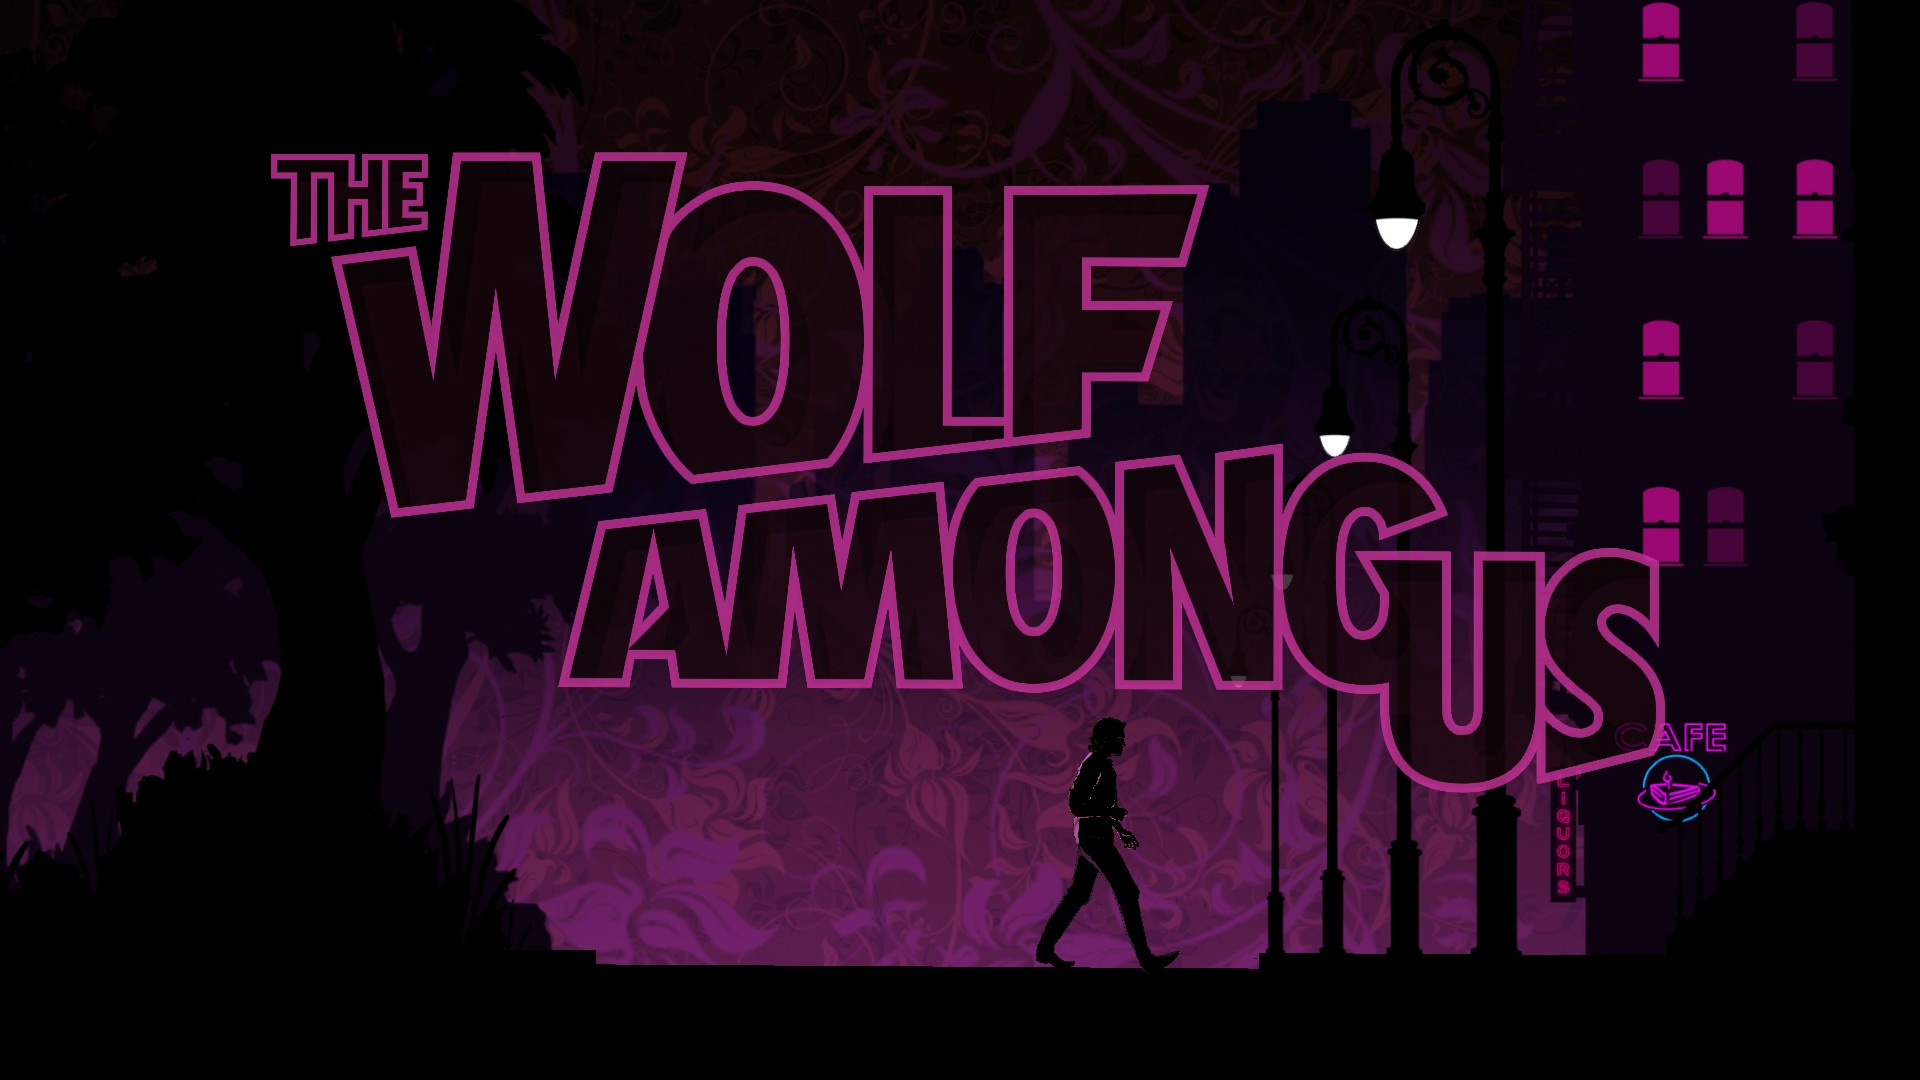 the wolf among us game t wallpaper 1920x1080 169413. Black Bedroom Furniture Sets. Home Design Ideas